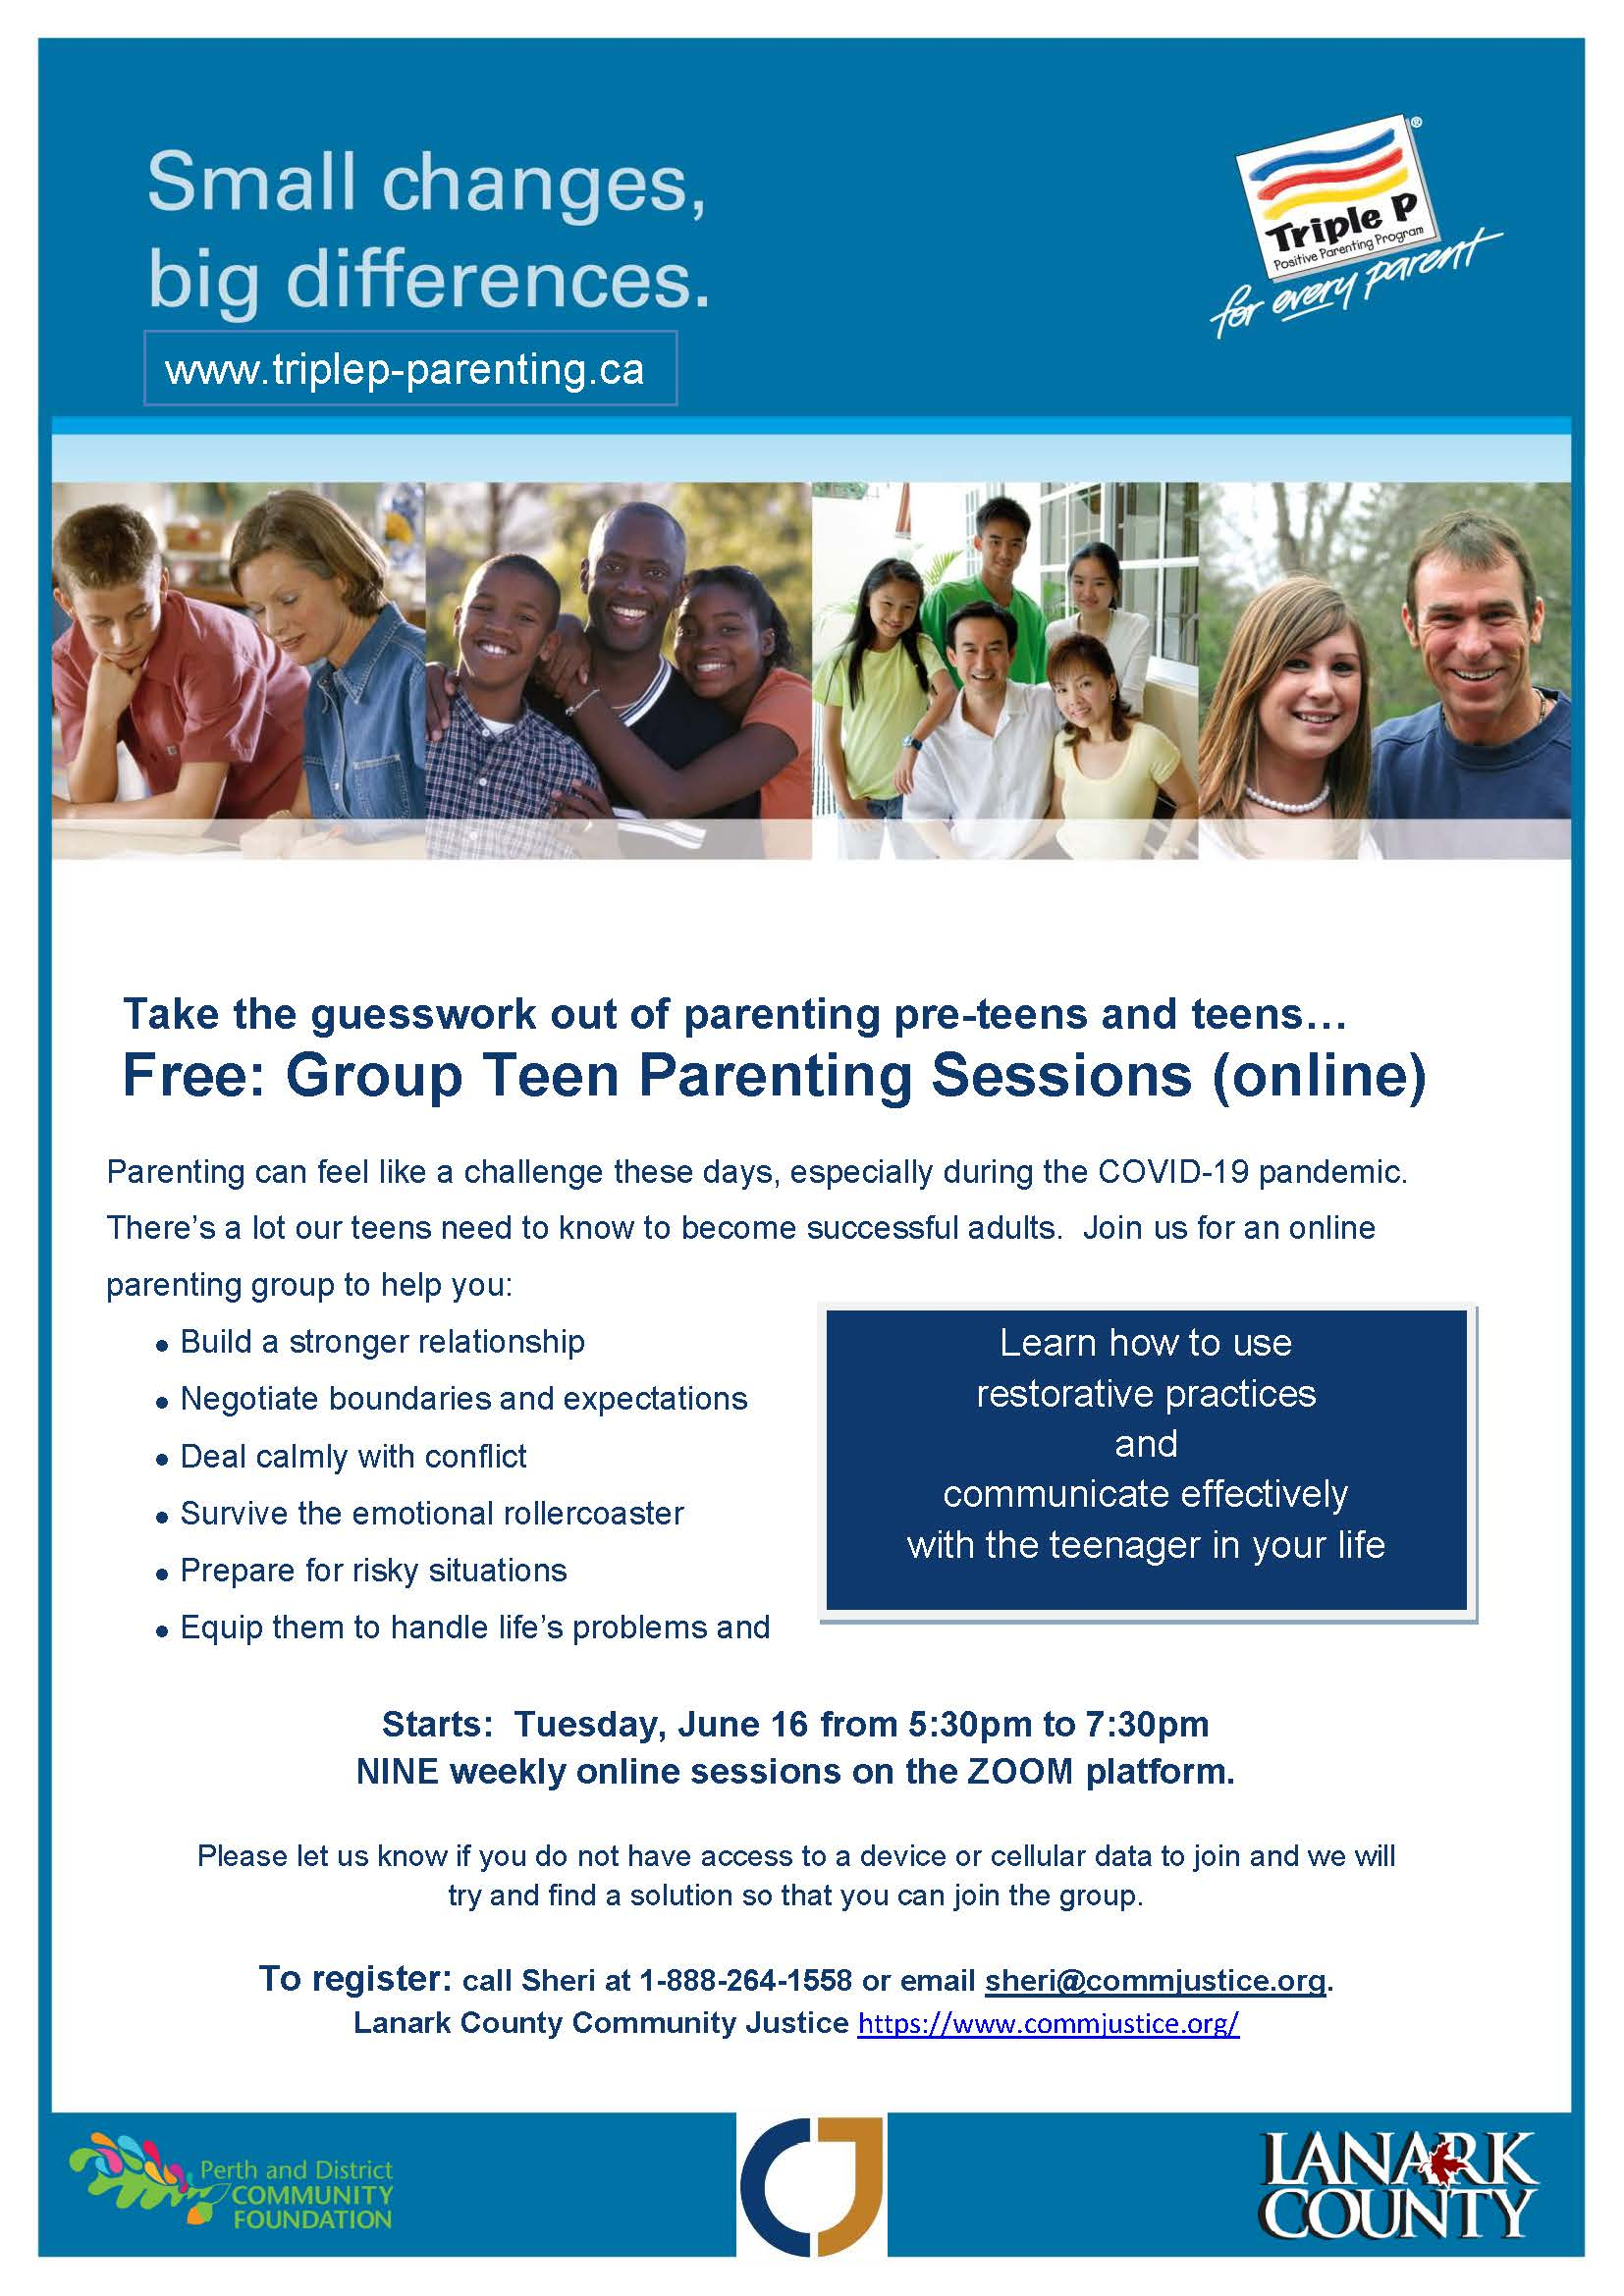 Free On-Line Teen Parenting Group Session June 16th for 9 weeks